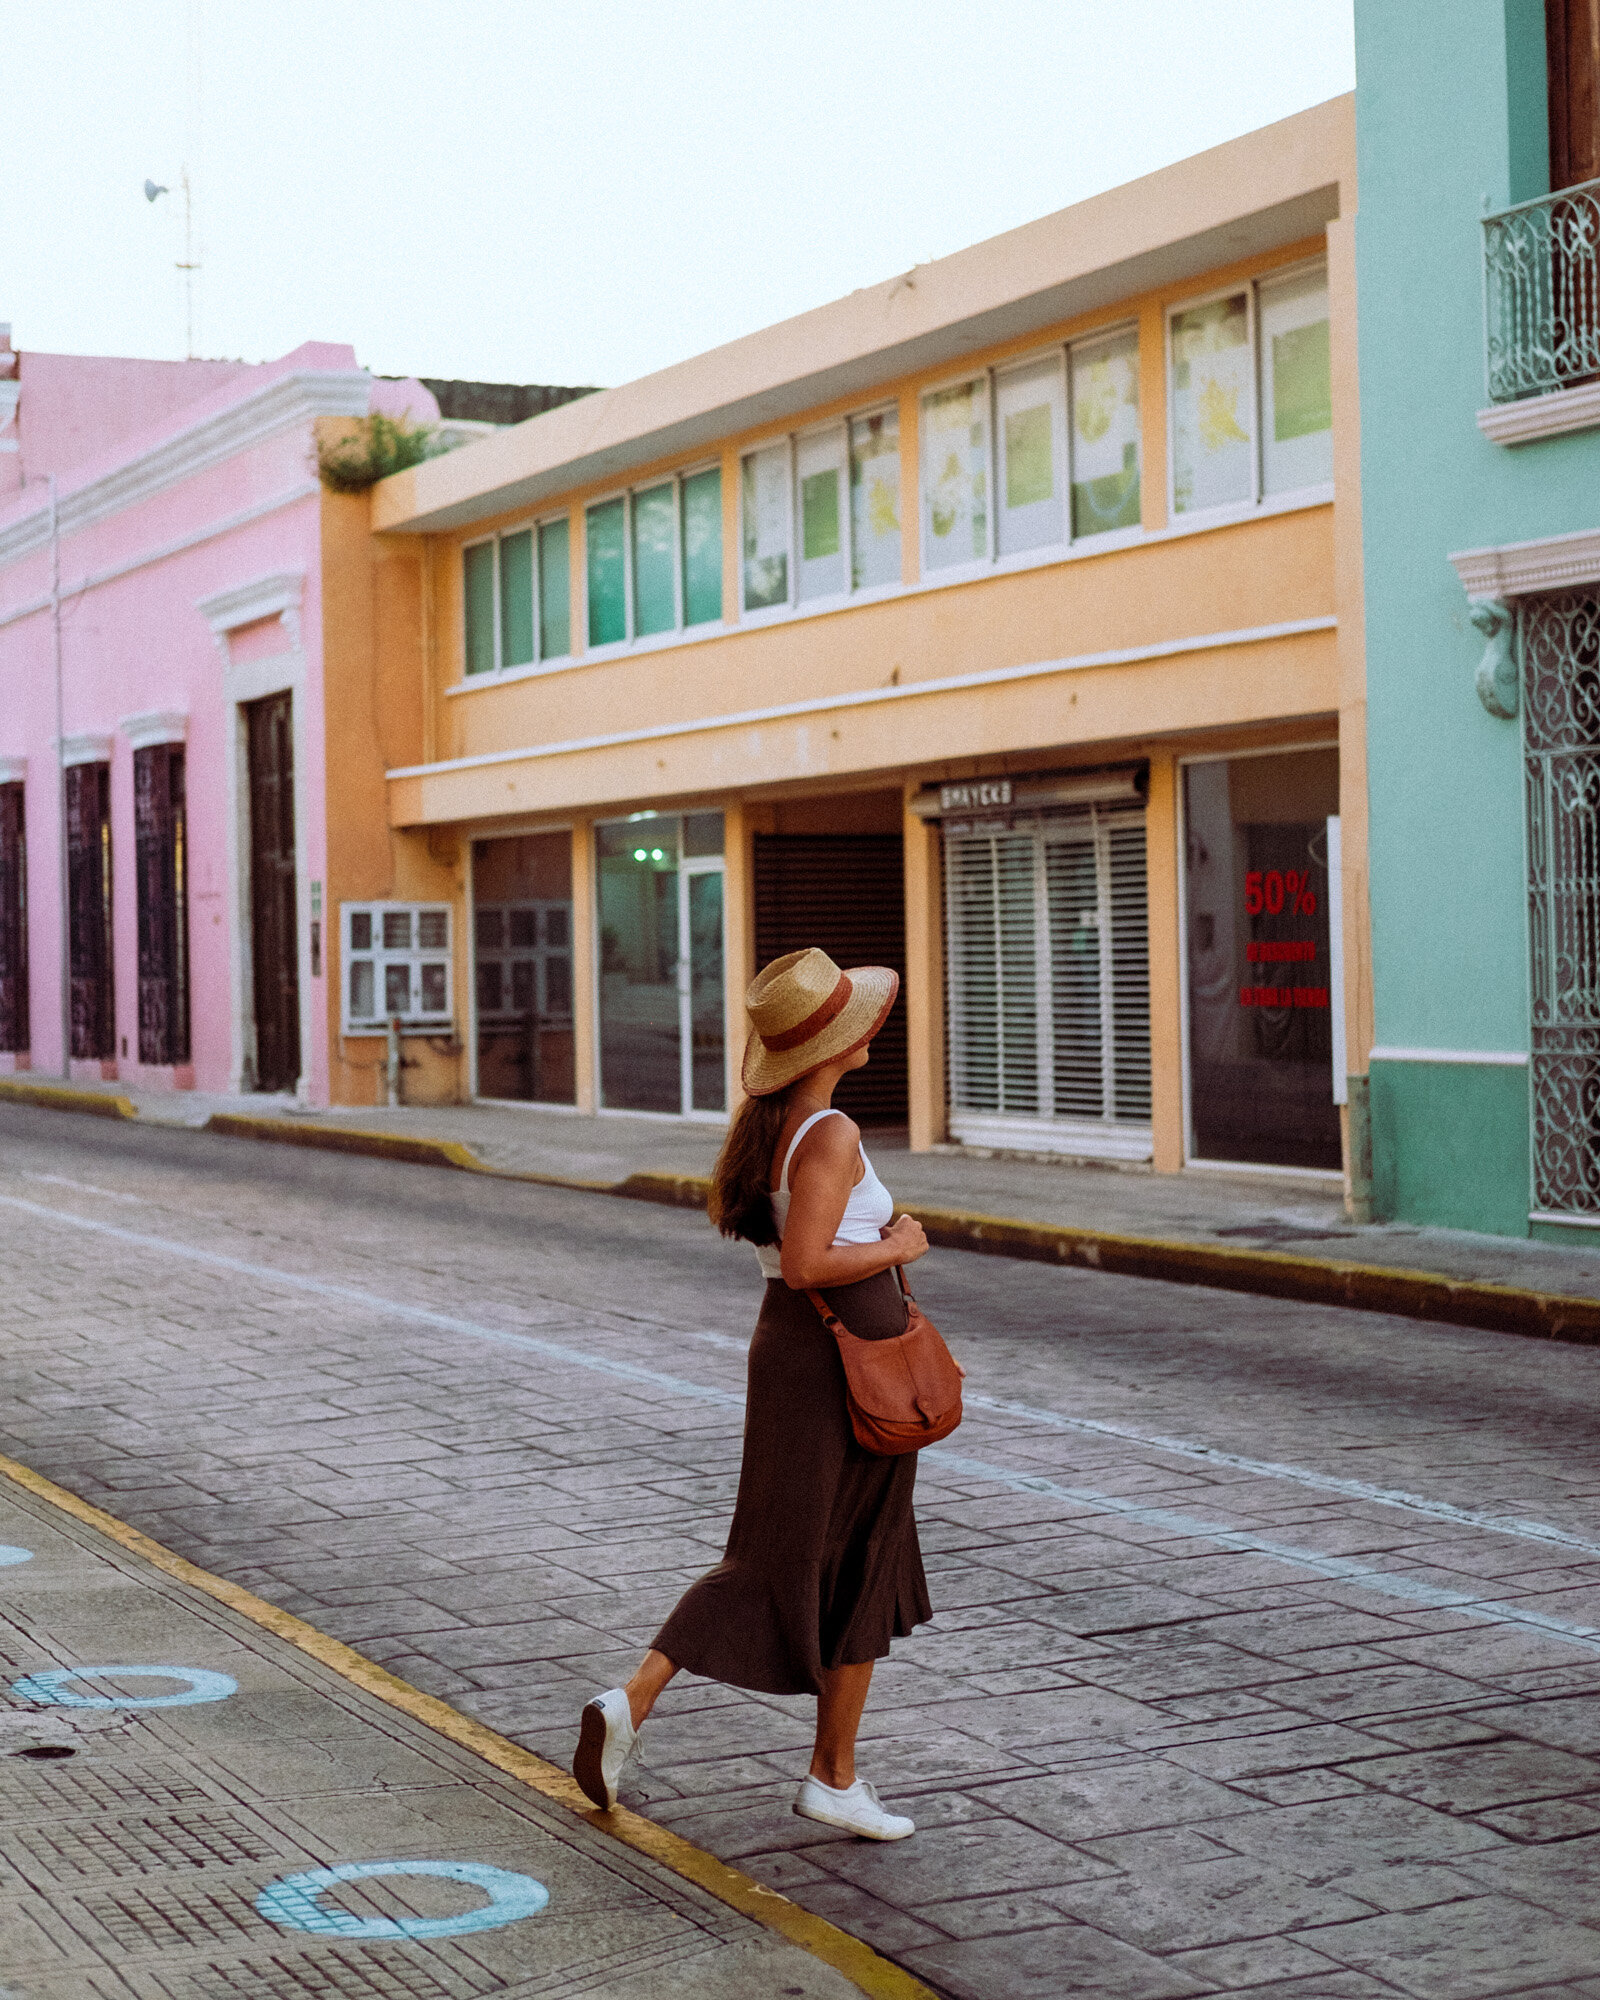 Rachel Off Duty: A Woman Walking Through the Colorful Streets of Merida